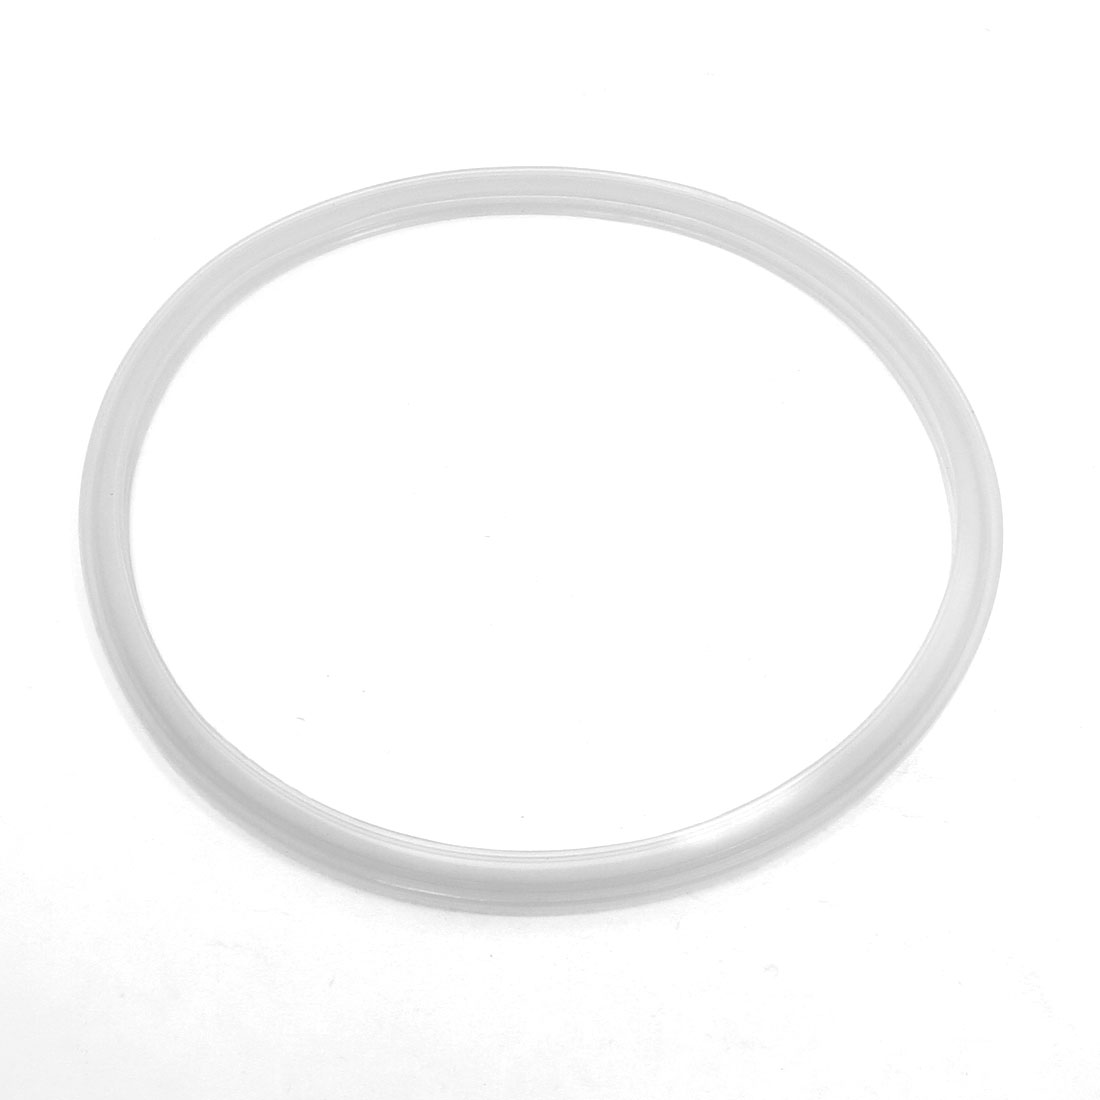 18cm Soft Rubber Seal Ring Replacement for Pressure Cooker